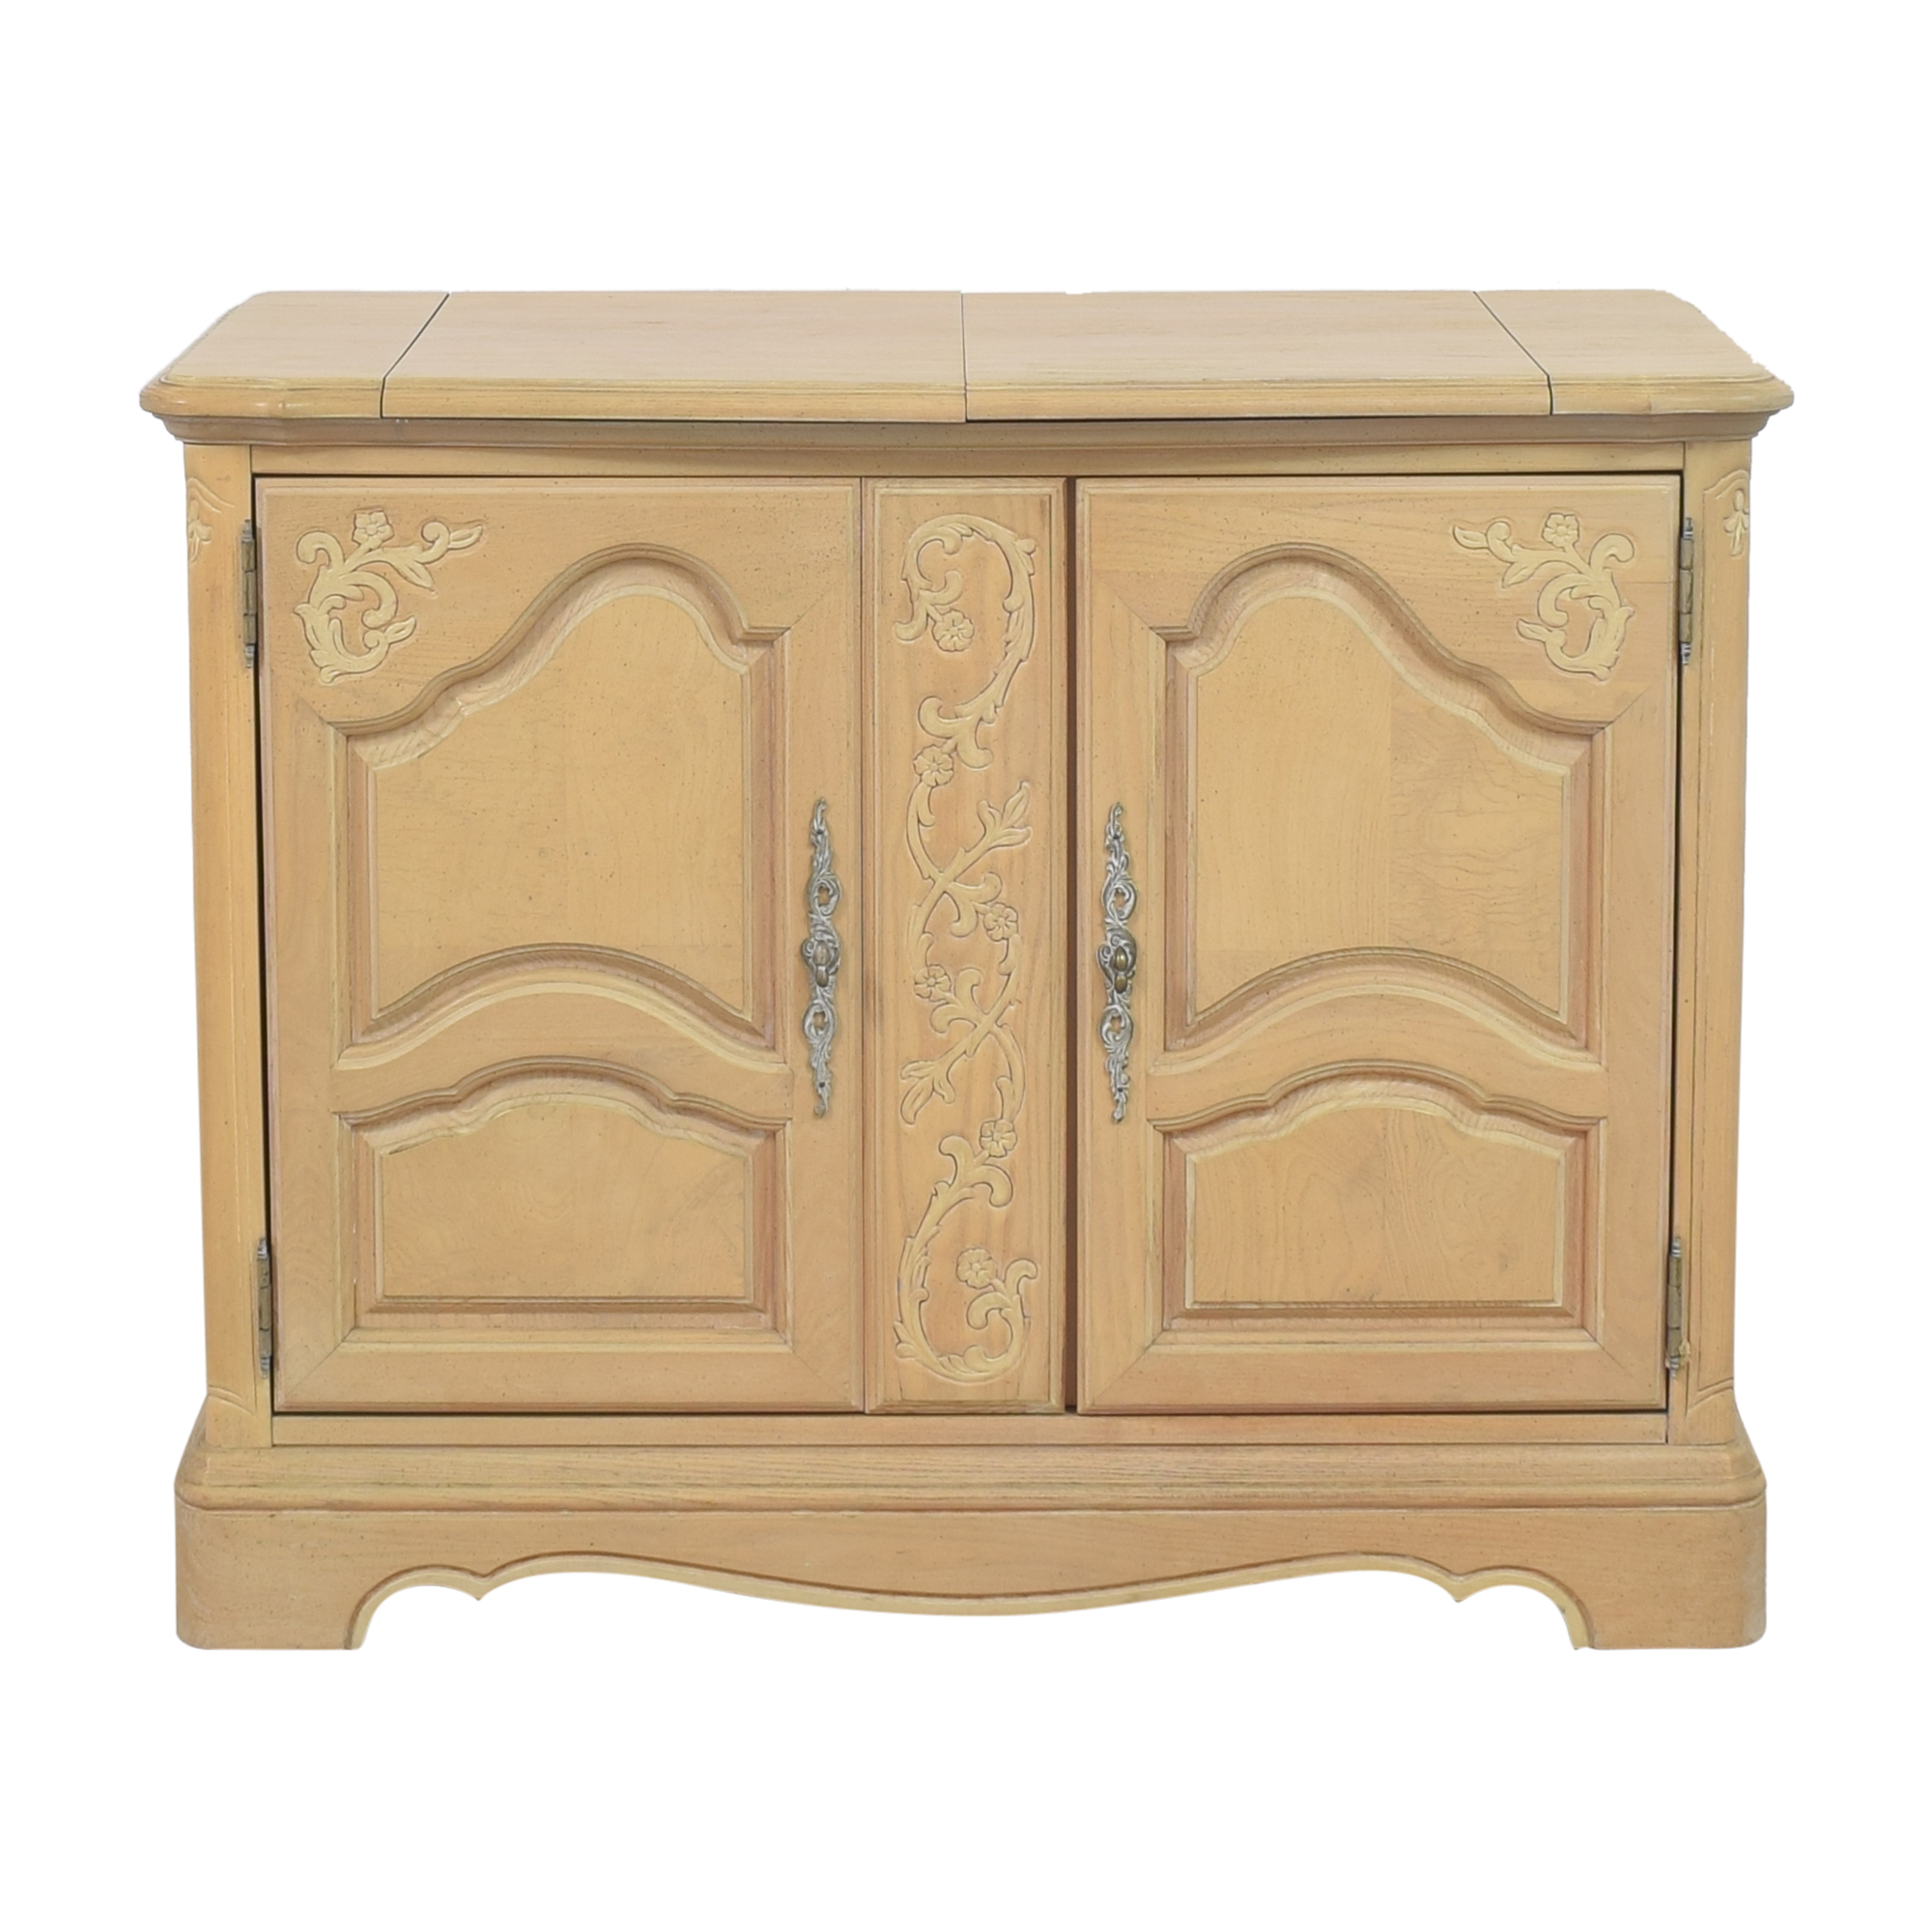 Stanley Furniture Stanley Furniture Country French Flip-Top Server Buffet price